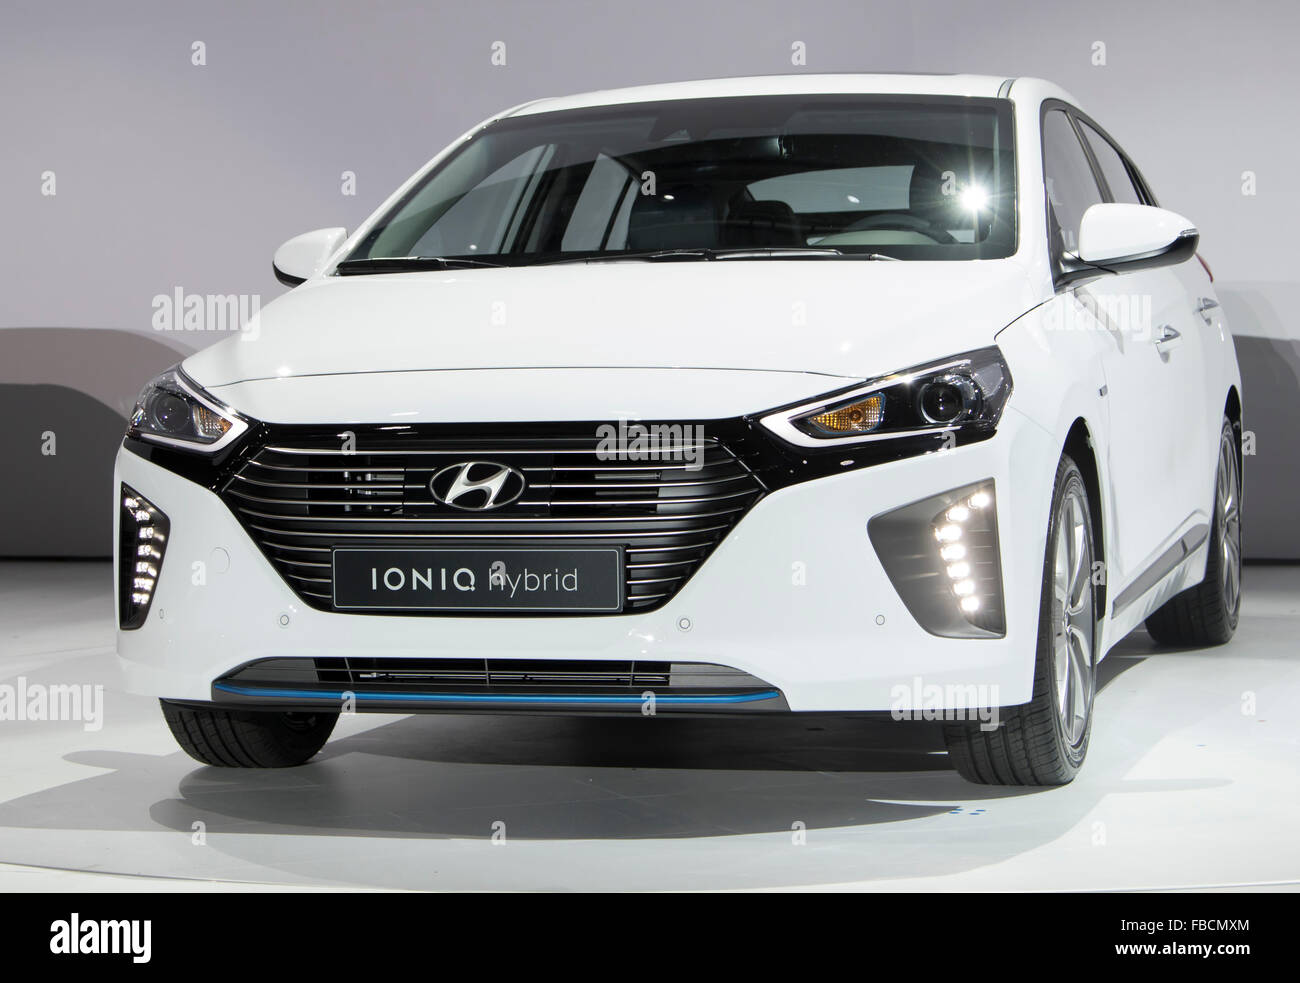 Ioniq Hybrid, Jan 14, 2016 : Hyundai Motor's Ioniq hybrid is seen during a press conference in Seoul, South - Stock Image